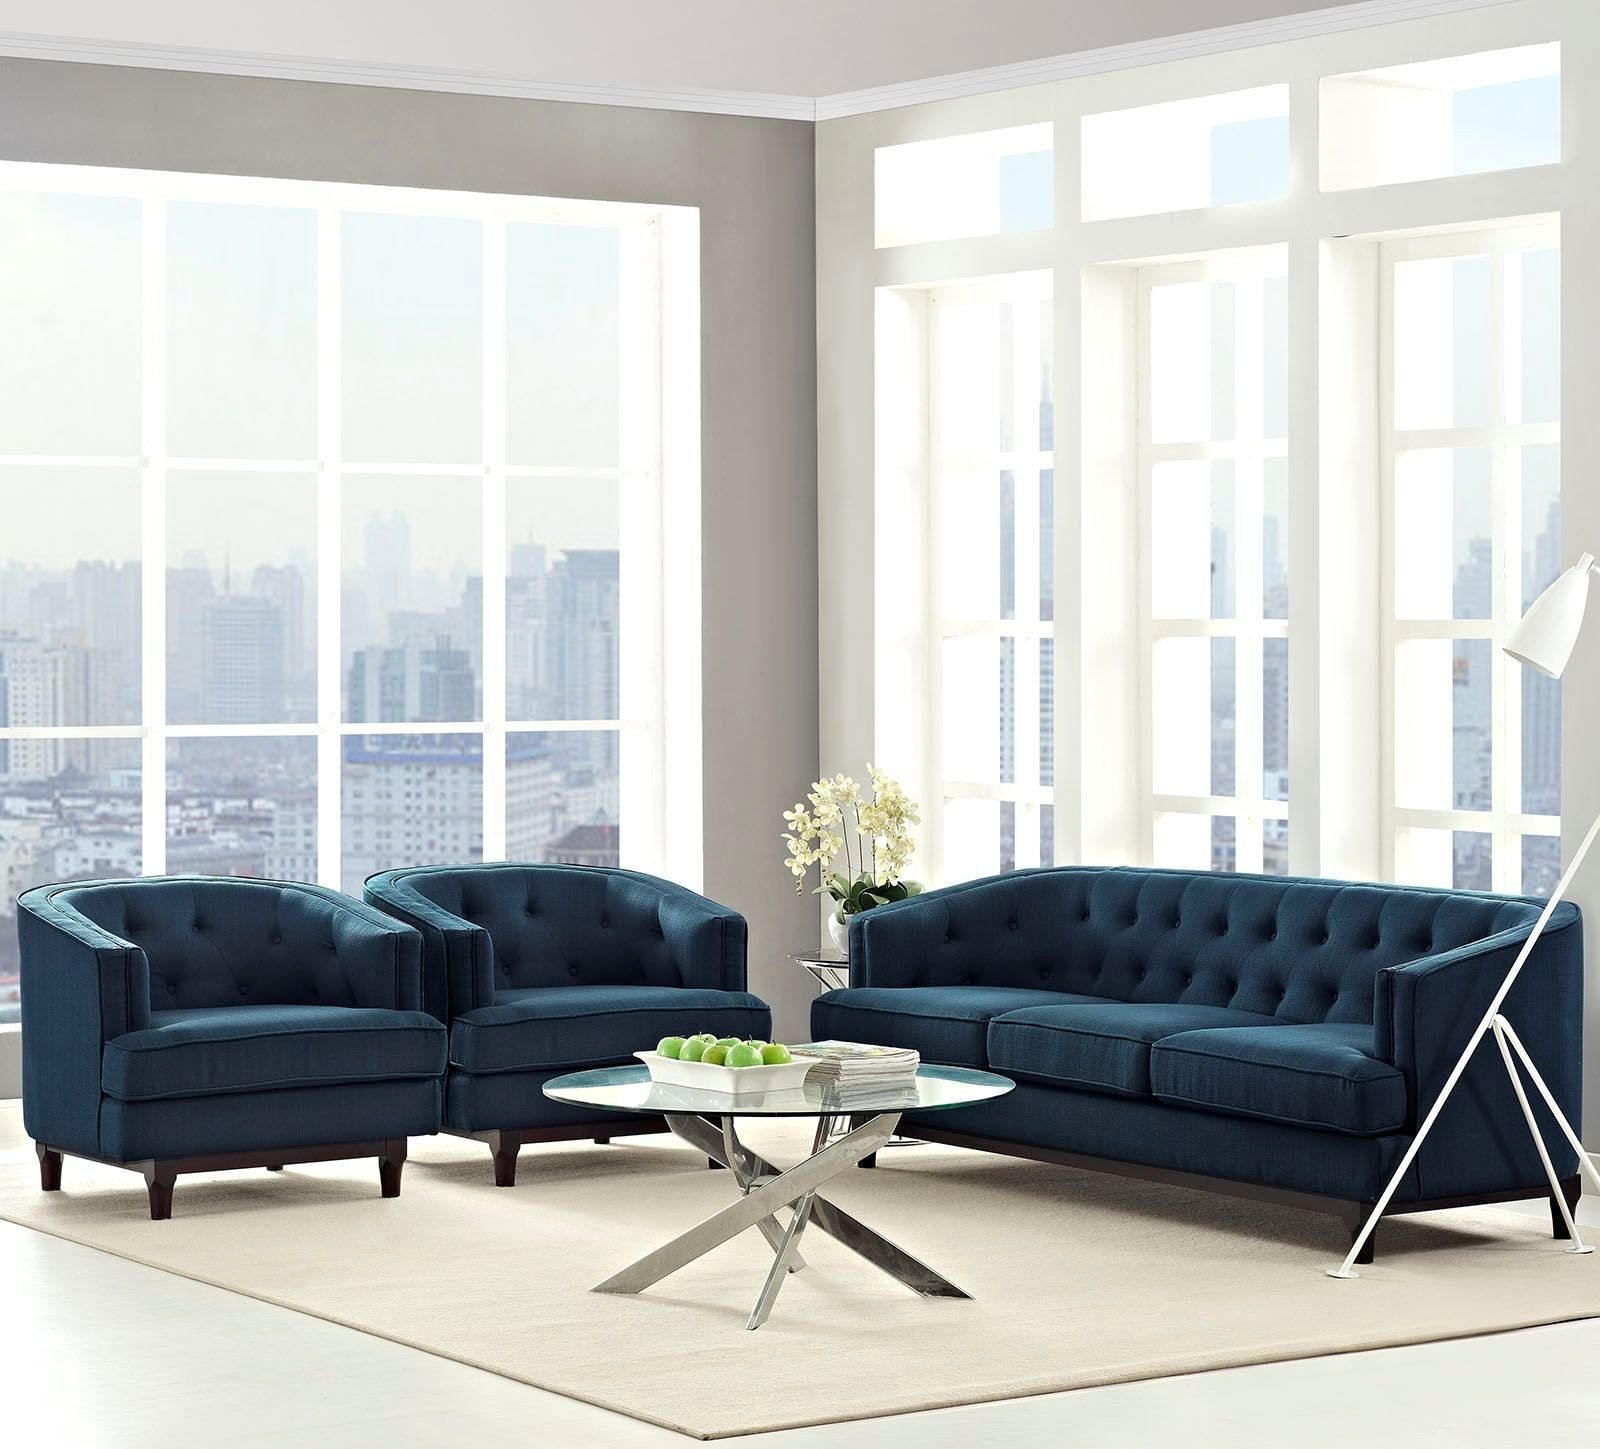 Coast azure 3 piece living room set from renegade for 7 piece living room set with tv